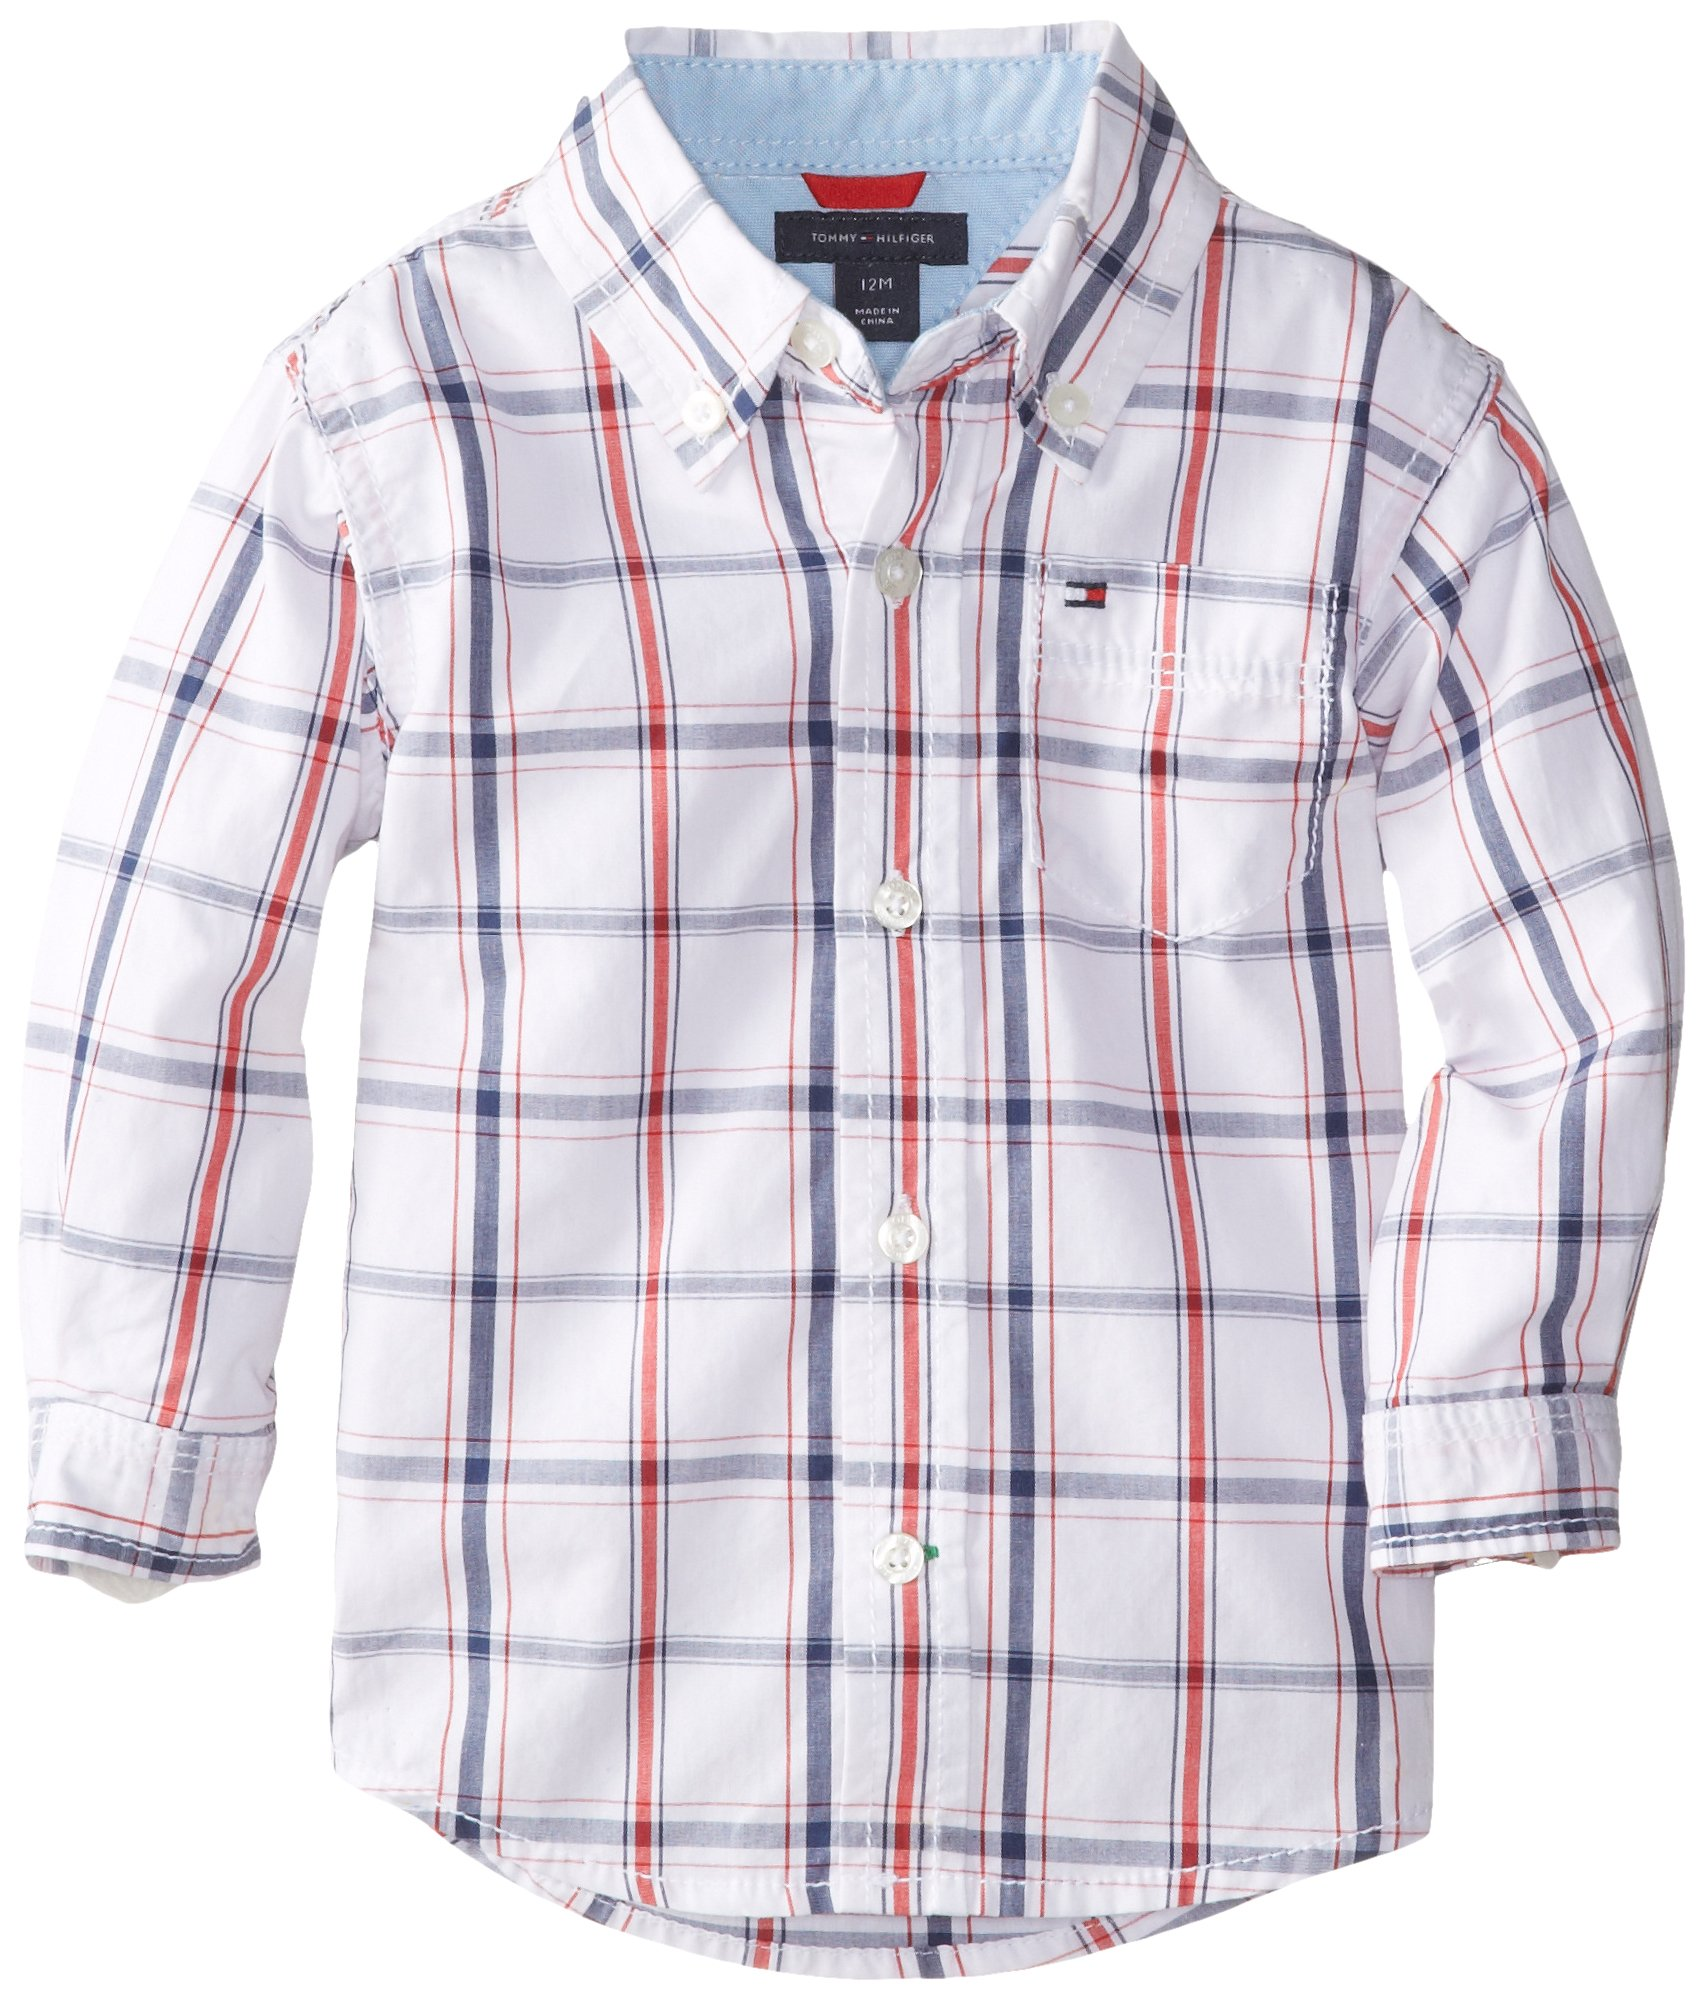 Tommy Hilfiger Baby Boys' Samuel Plaid Shirt, White, 24 Months